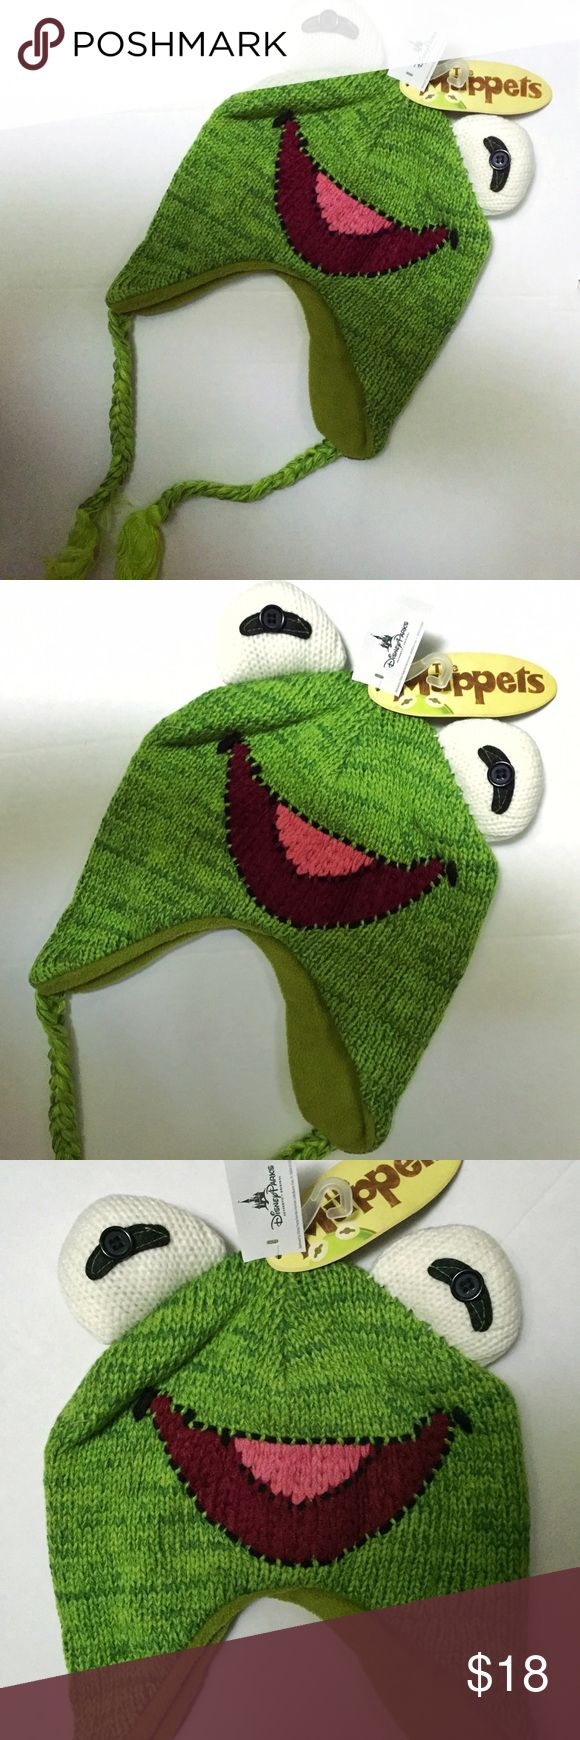 Disney The Muppets Kermit the Frog Laplander Hat Brand new with tags, adult sized, one size fits most. This Disney The Muppets Kermit the Frog Knit Laplander Beanie Hat would be a great simple costume idea! Perfect for any Kermit the Frog fan! Very high quality knit laplander but pop out button eyes! Official Disney Parks item! Disney Accessories Hats